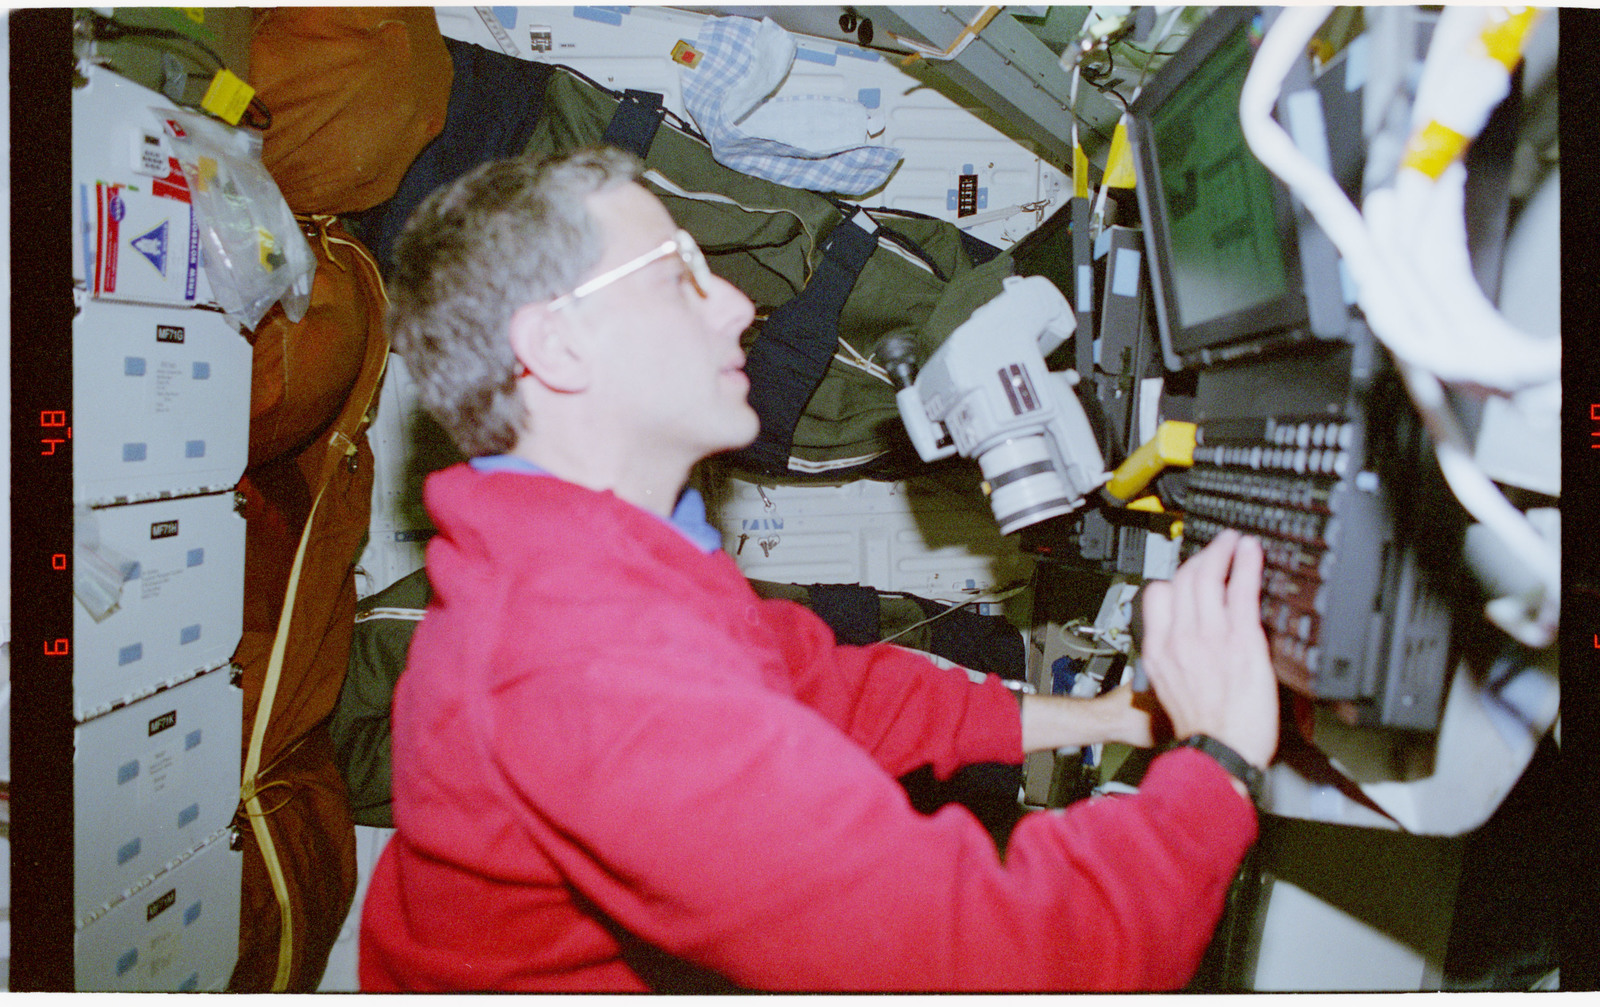 STS079-302-007 - STS-079 - STS-79 crew activities on Atlantis and in the Spacehab